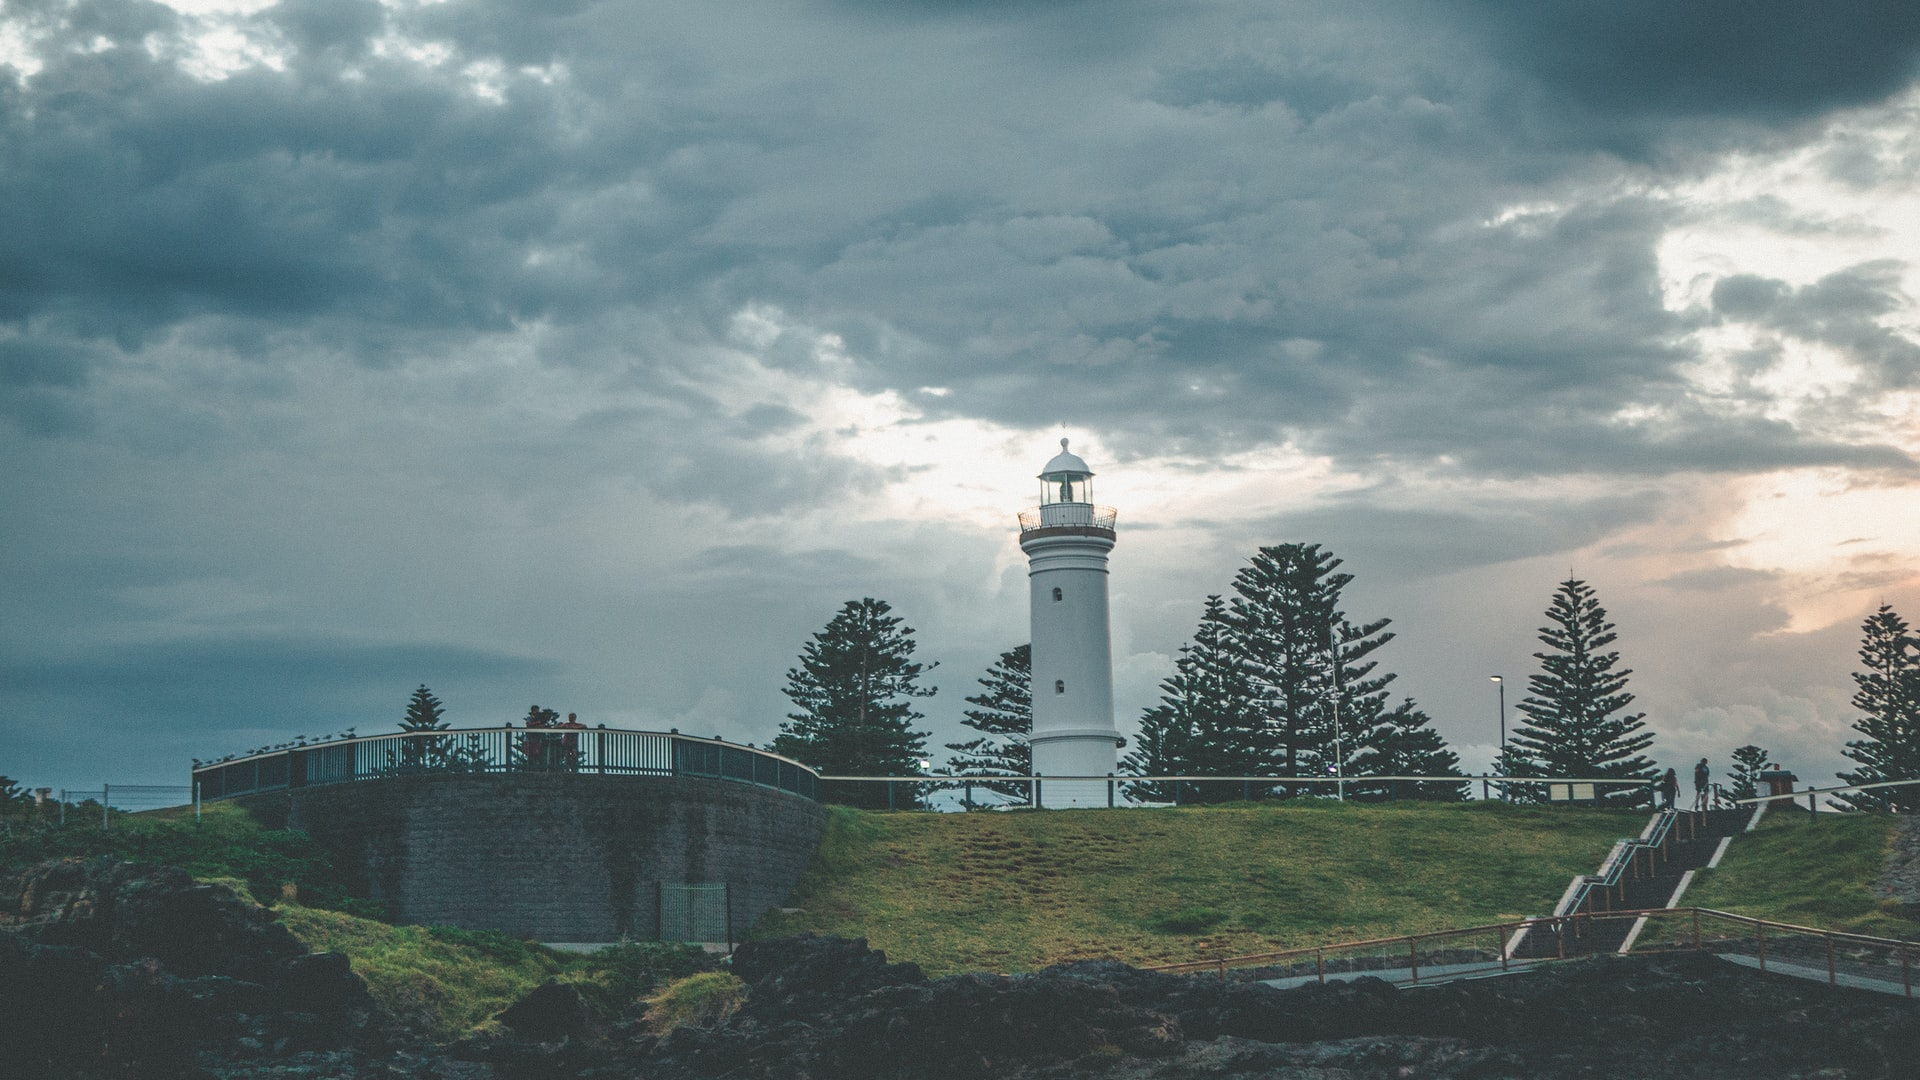 Things to do in Kiama RunHunters weekend away